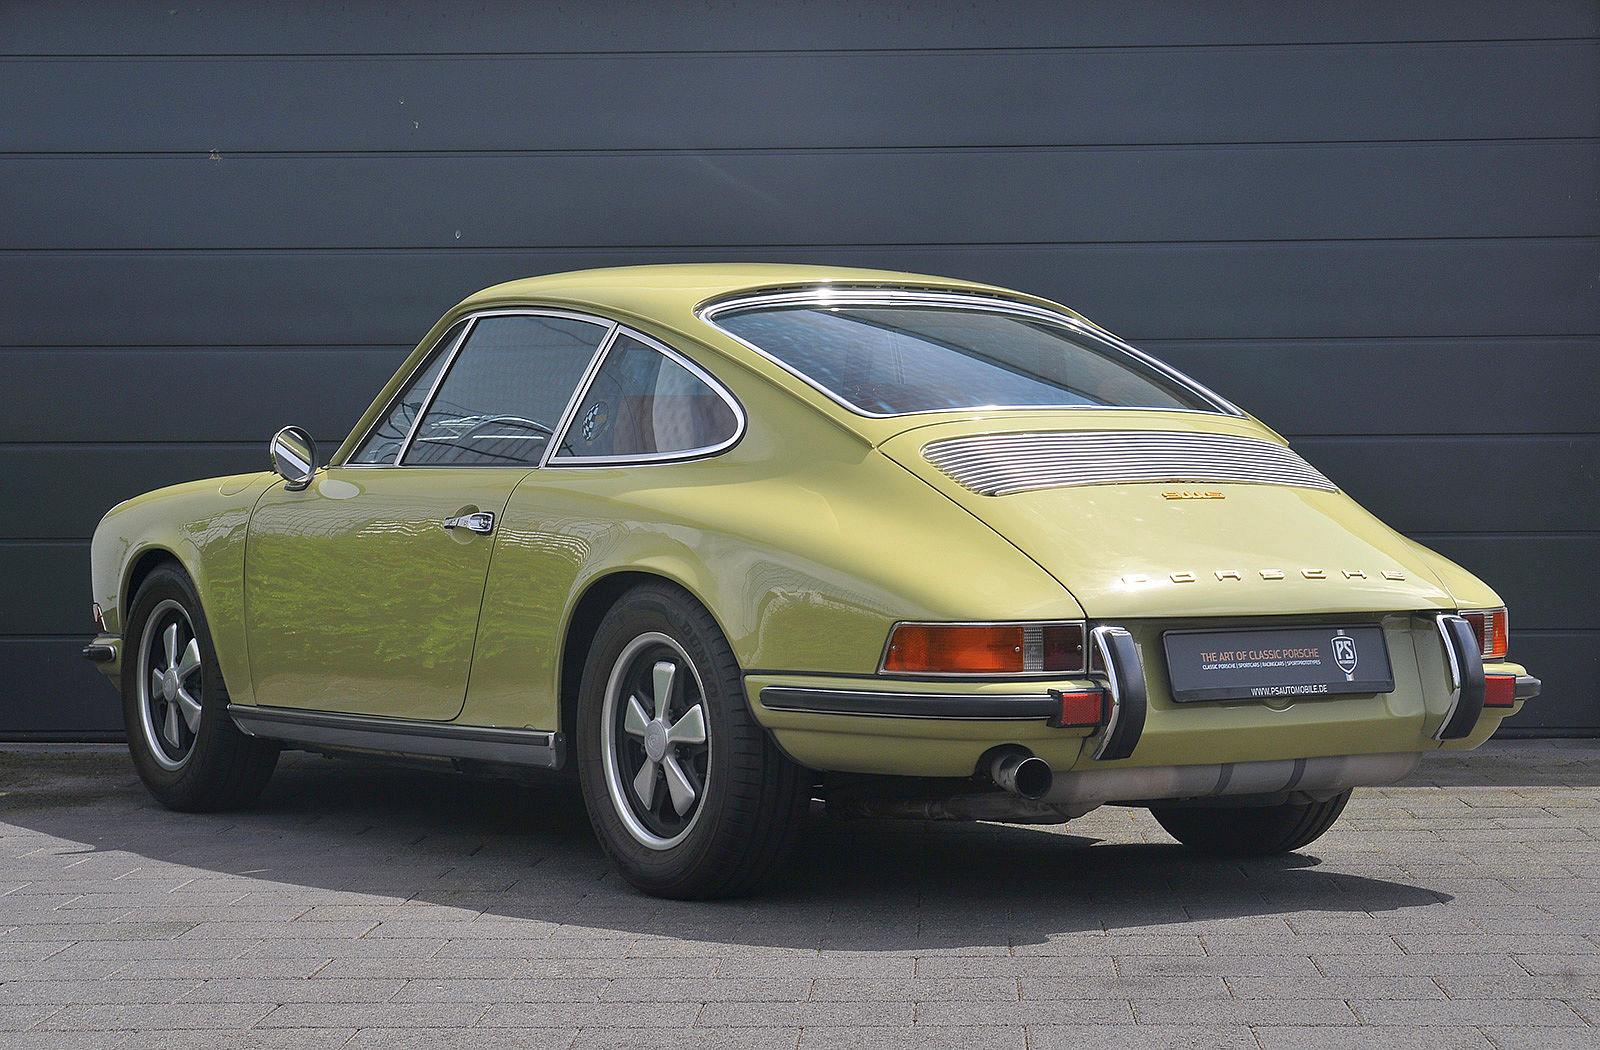 PS Automobile Porsche 911 2.0 S Coupe Gelb 04